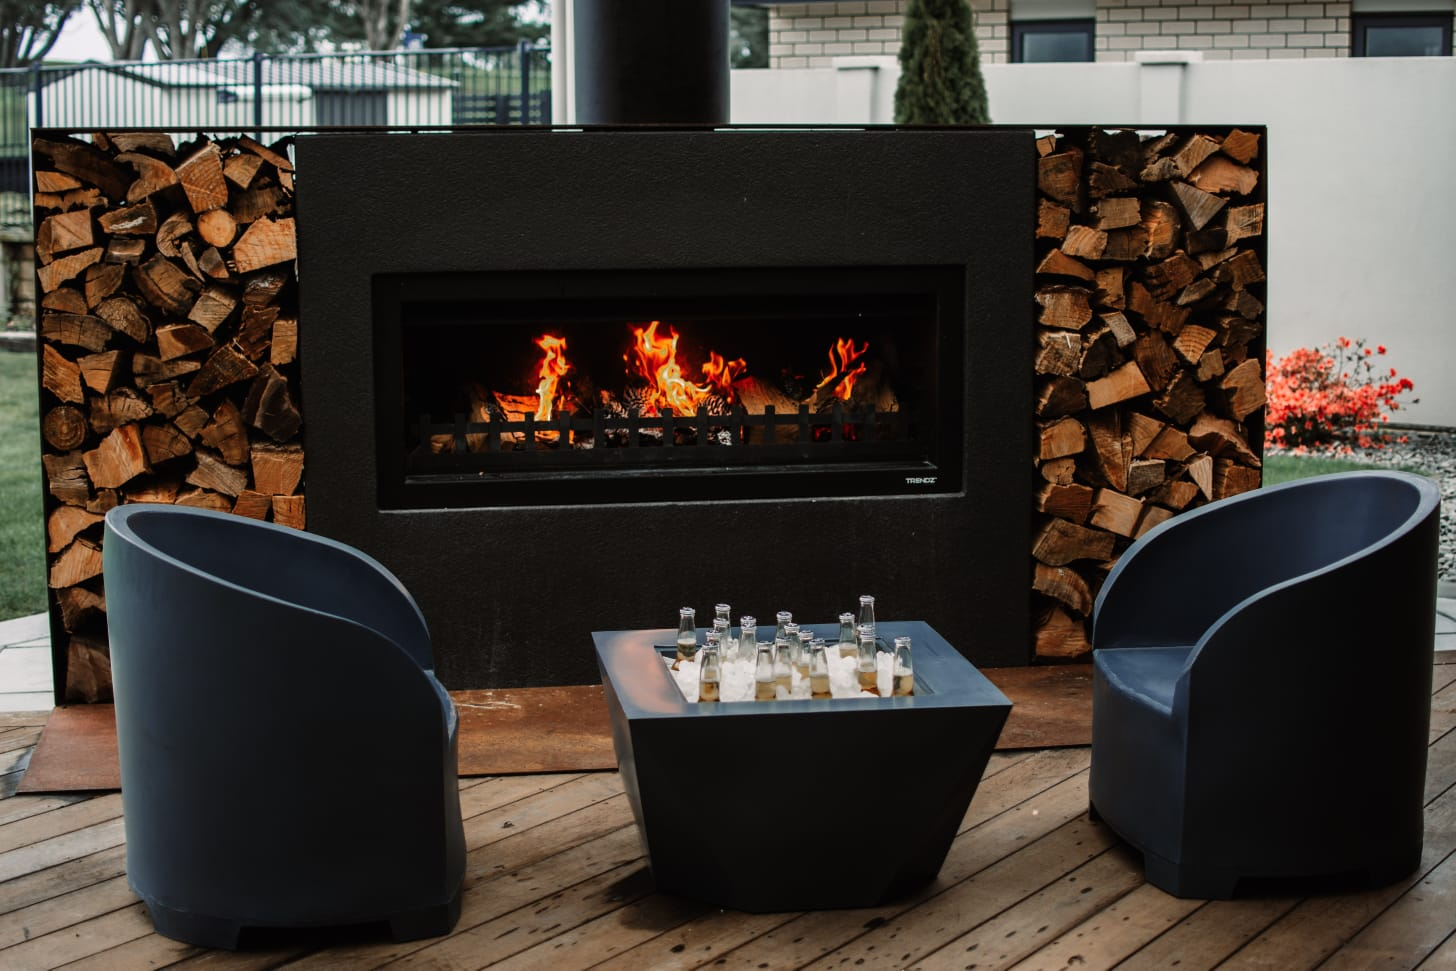 Outdoor fireplace painted black